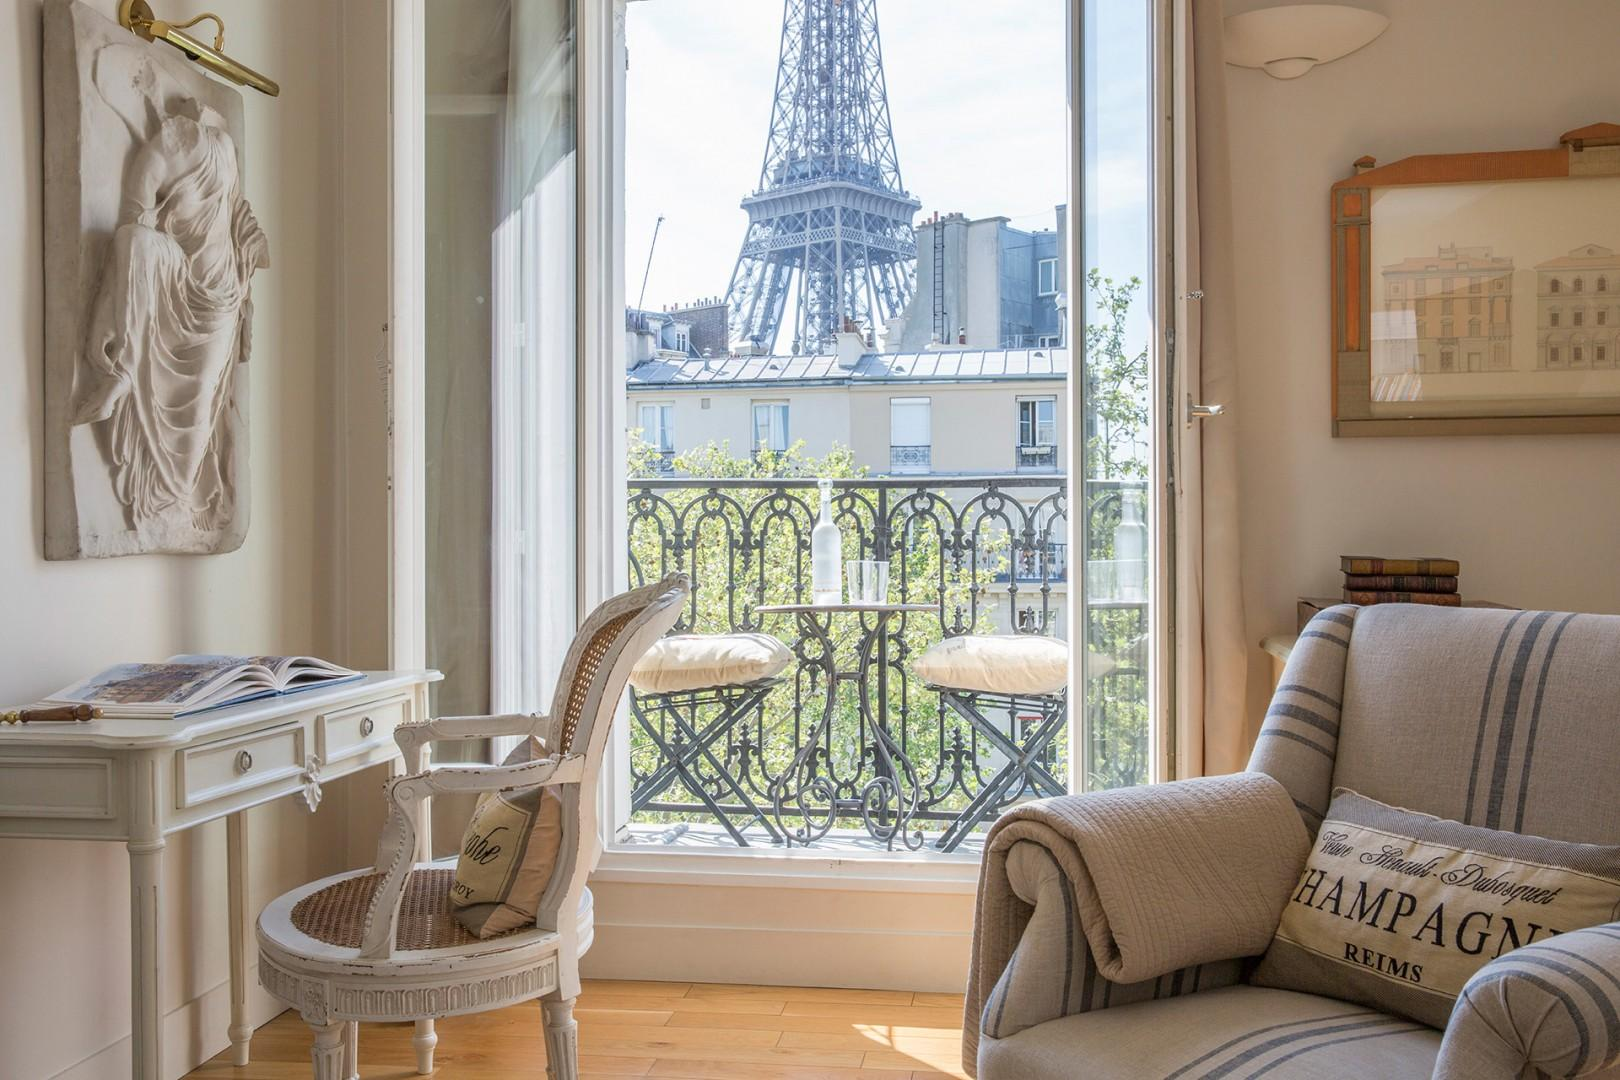 Sit back and relax with this view of the Eiffel Tower.